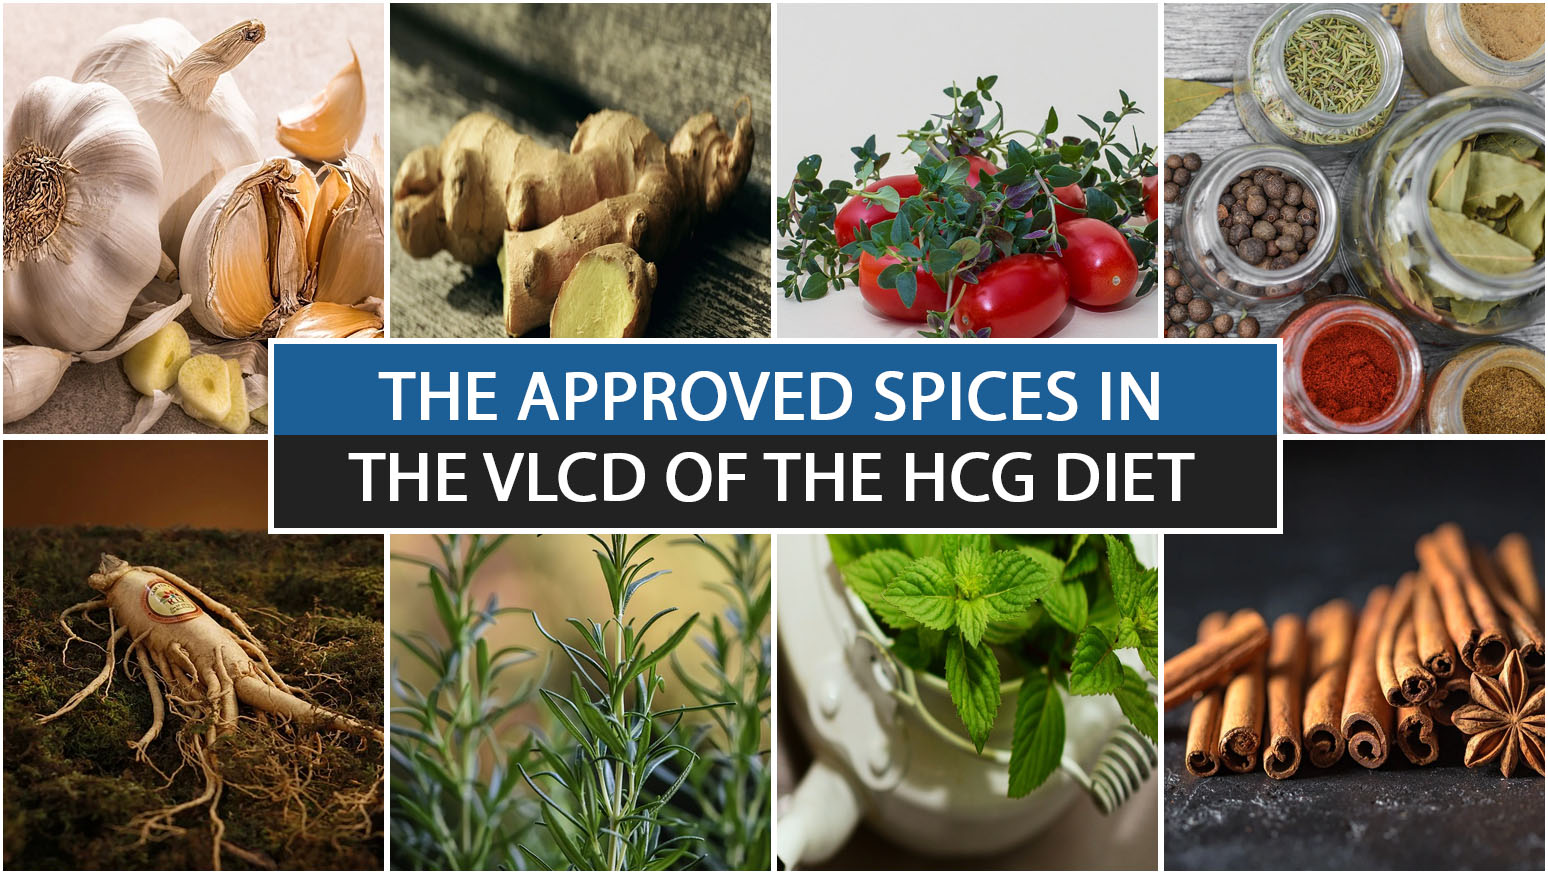 THE APPROVED SPICES IN THE VLCD OF THE HCG DIET